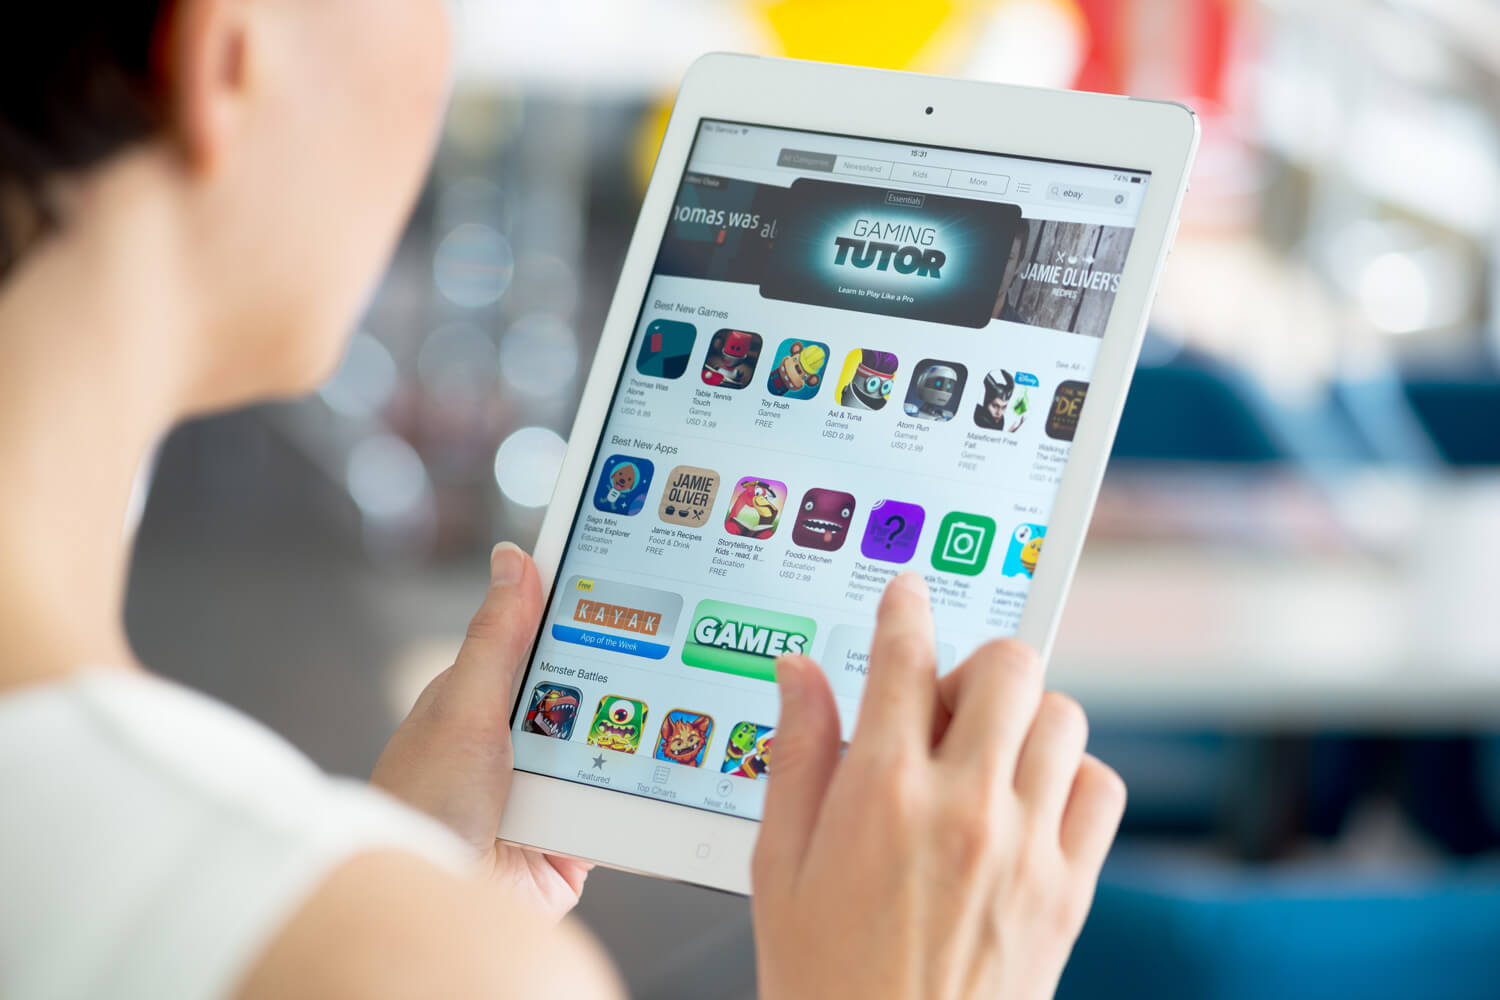 App Store customers were allowed to sue Apple